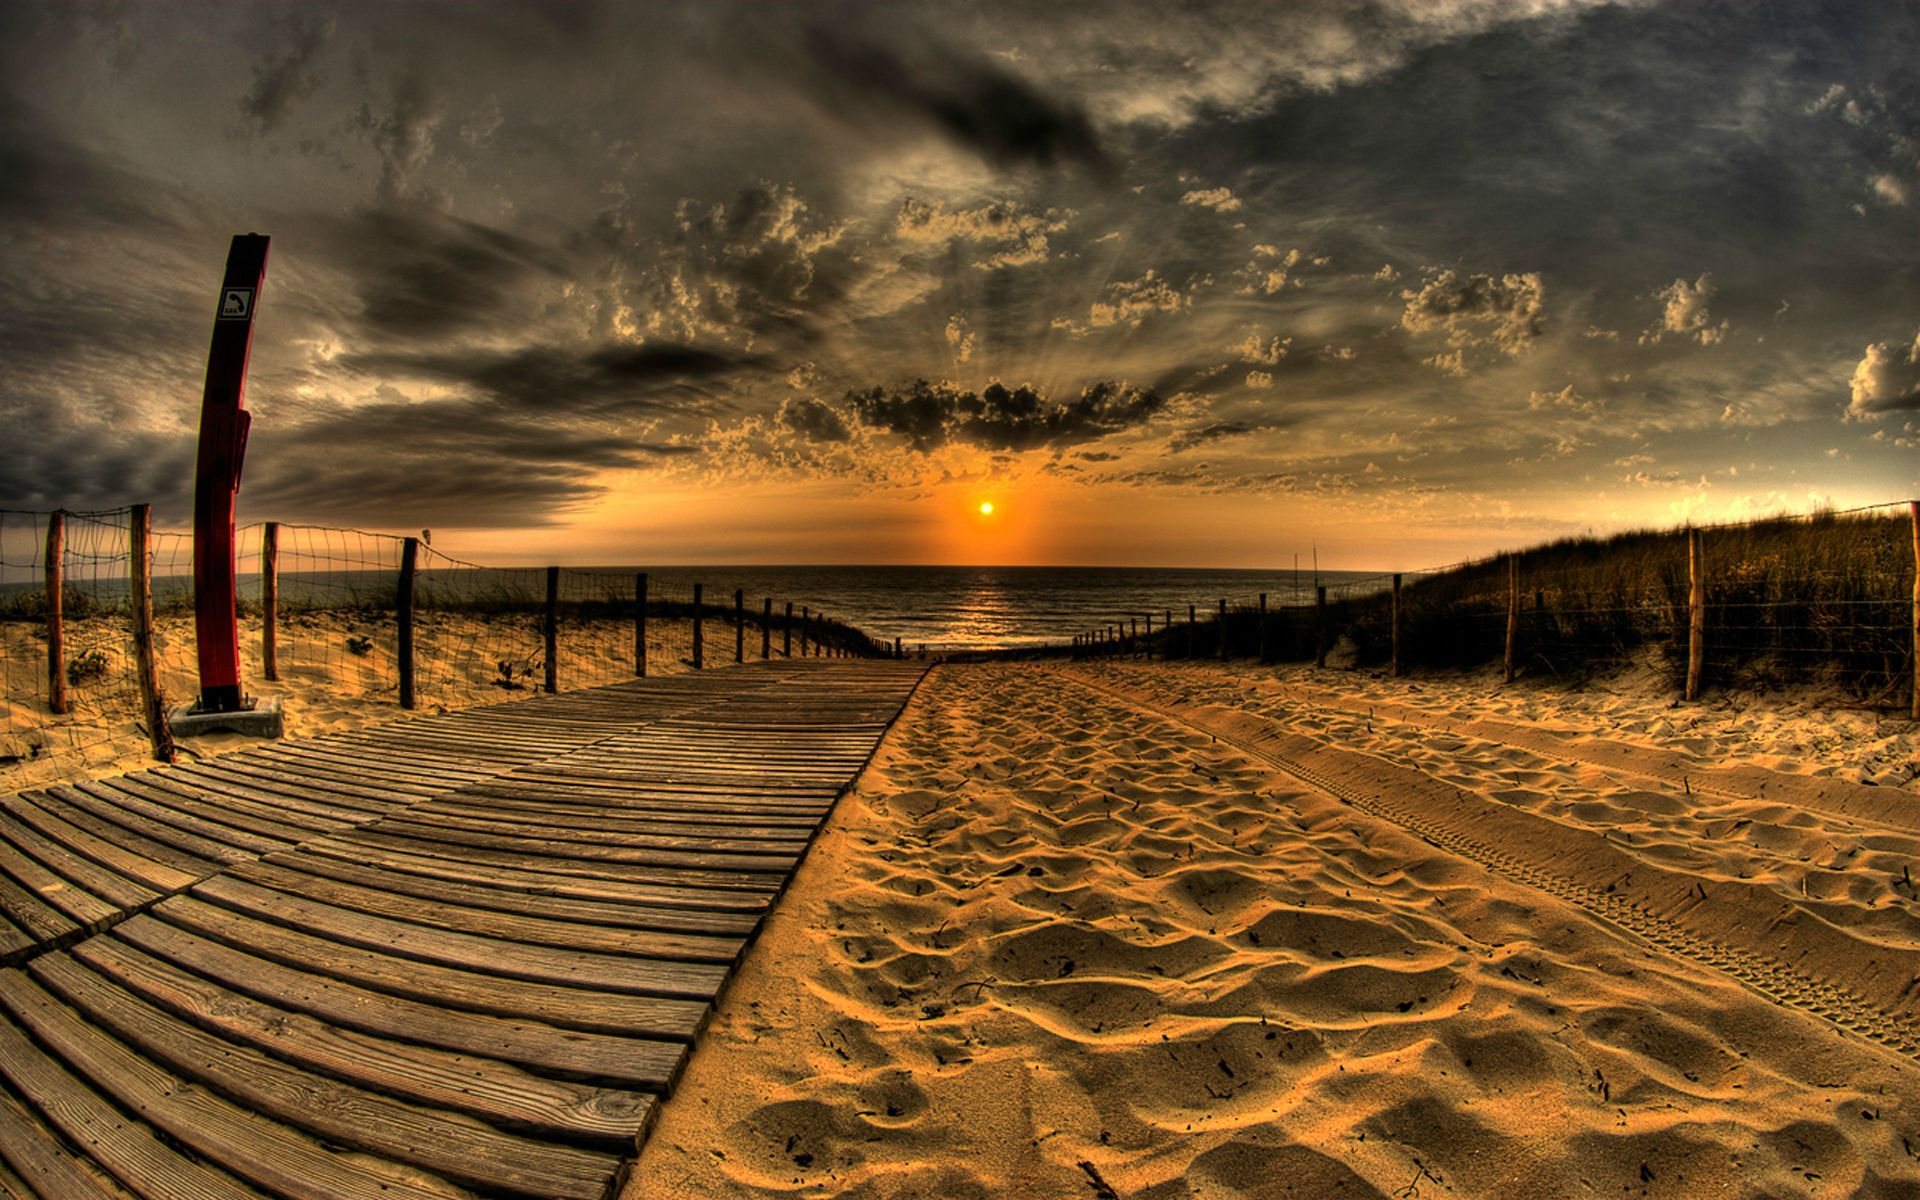 unset Wallpapers HD Images of Sunset Ultra HD K Sunset